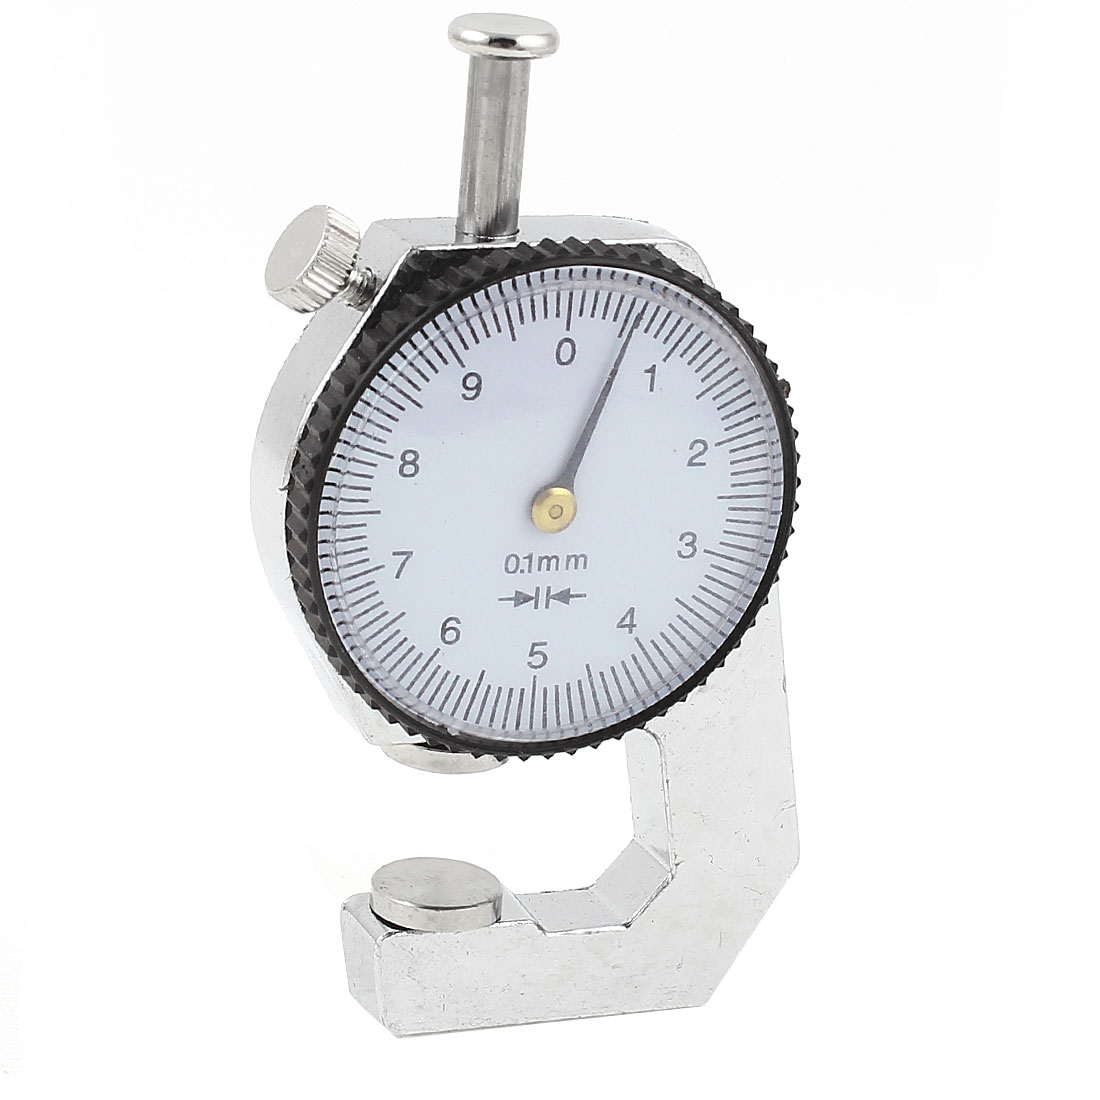 Measuring Tool 0 to 10mm Dial Indicator Pocket Thickness Gage Gauge